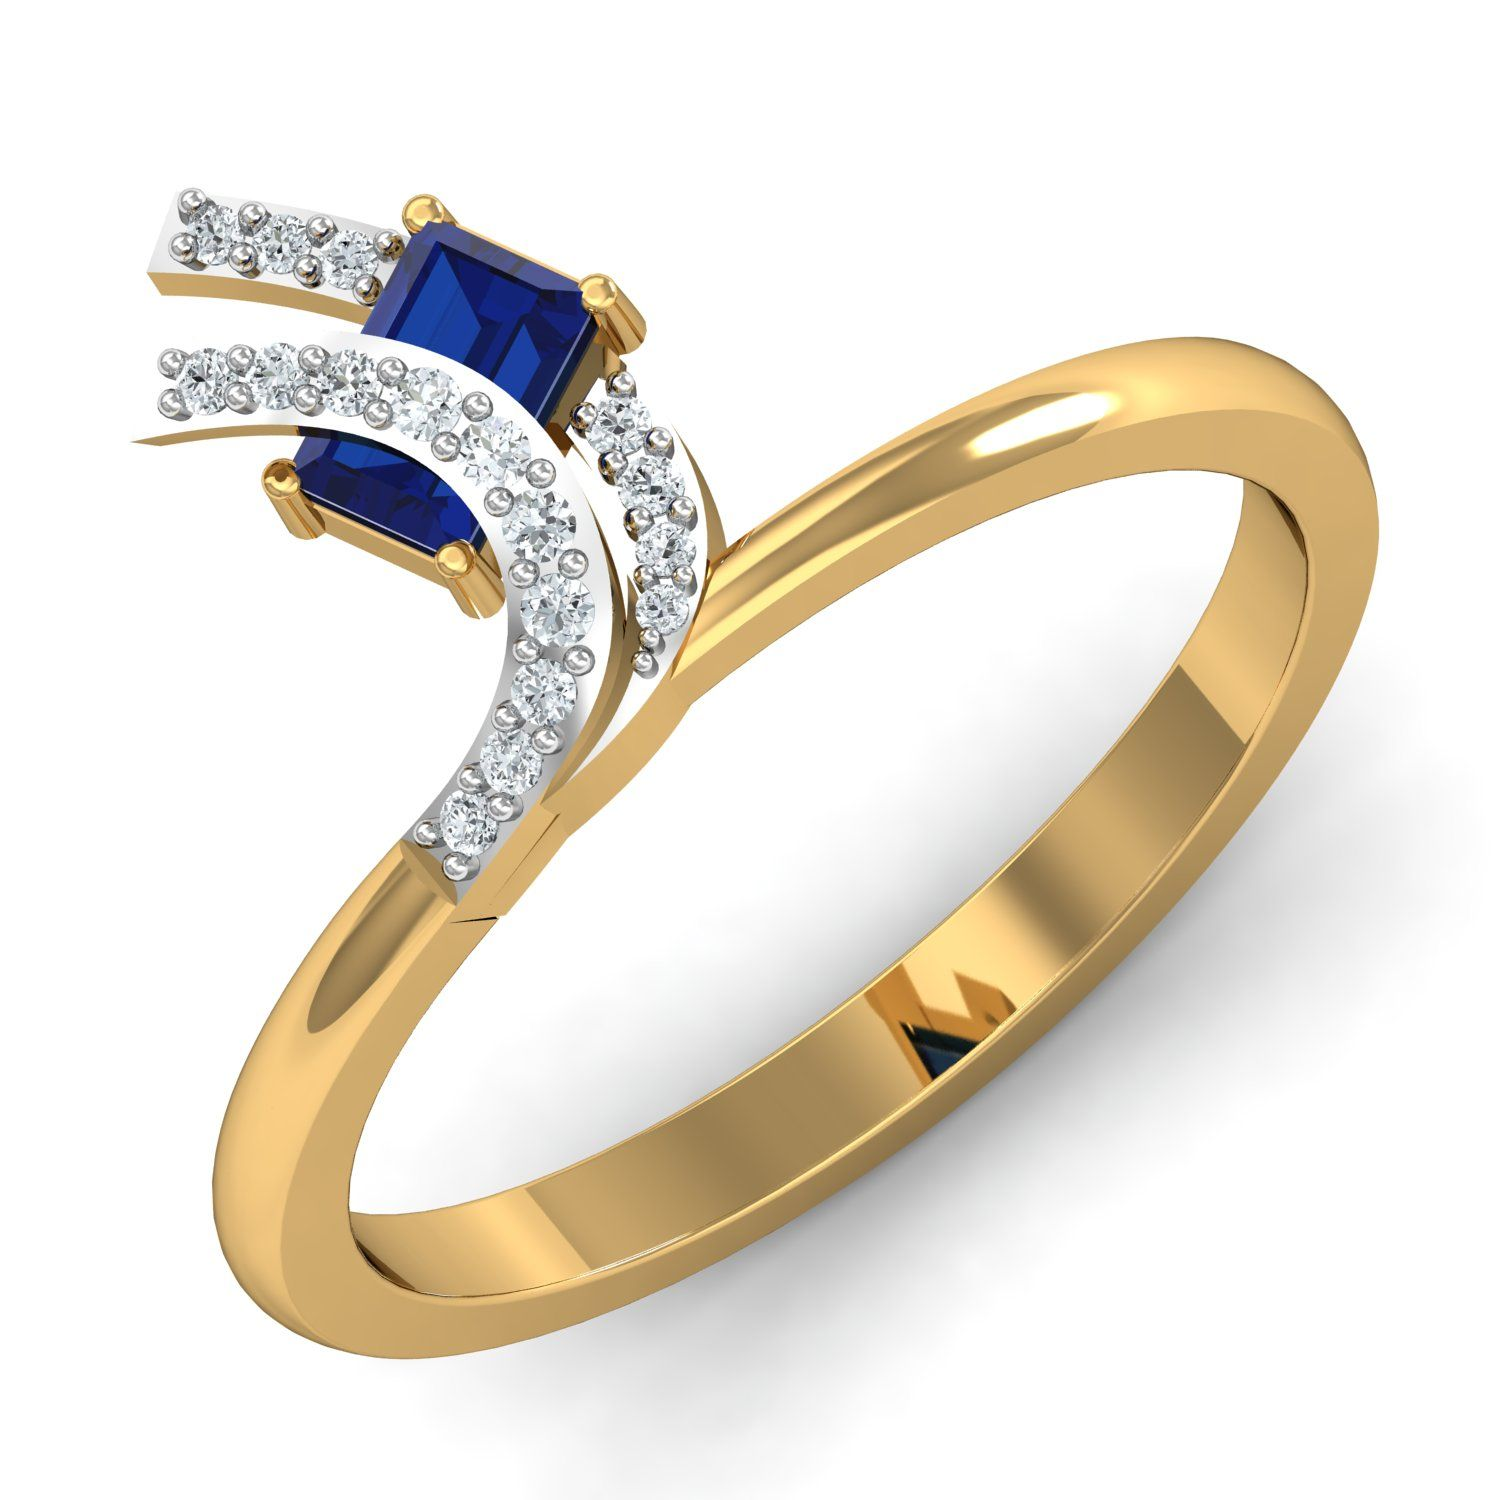 n gopaldas jewellers offers fancy diamond ring with blue colour